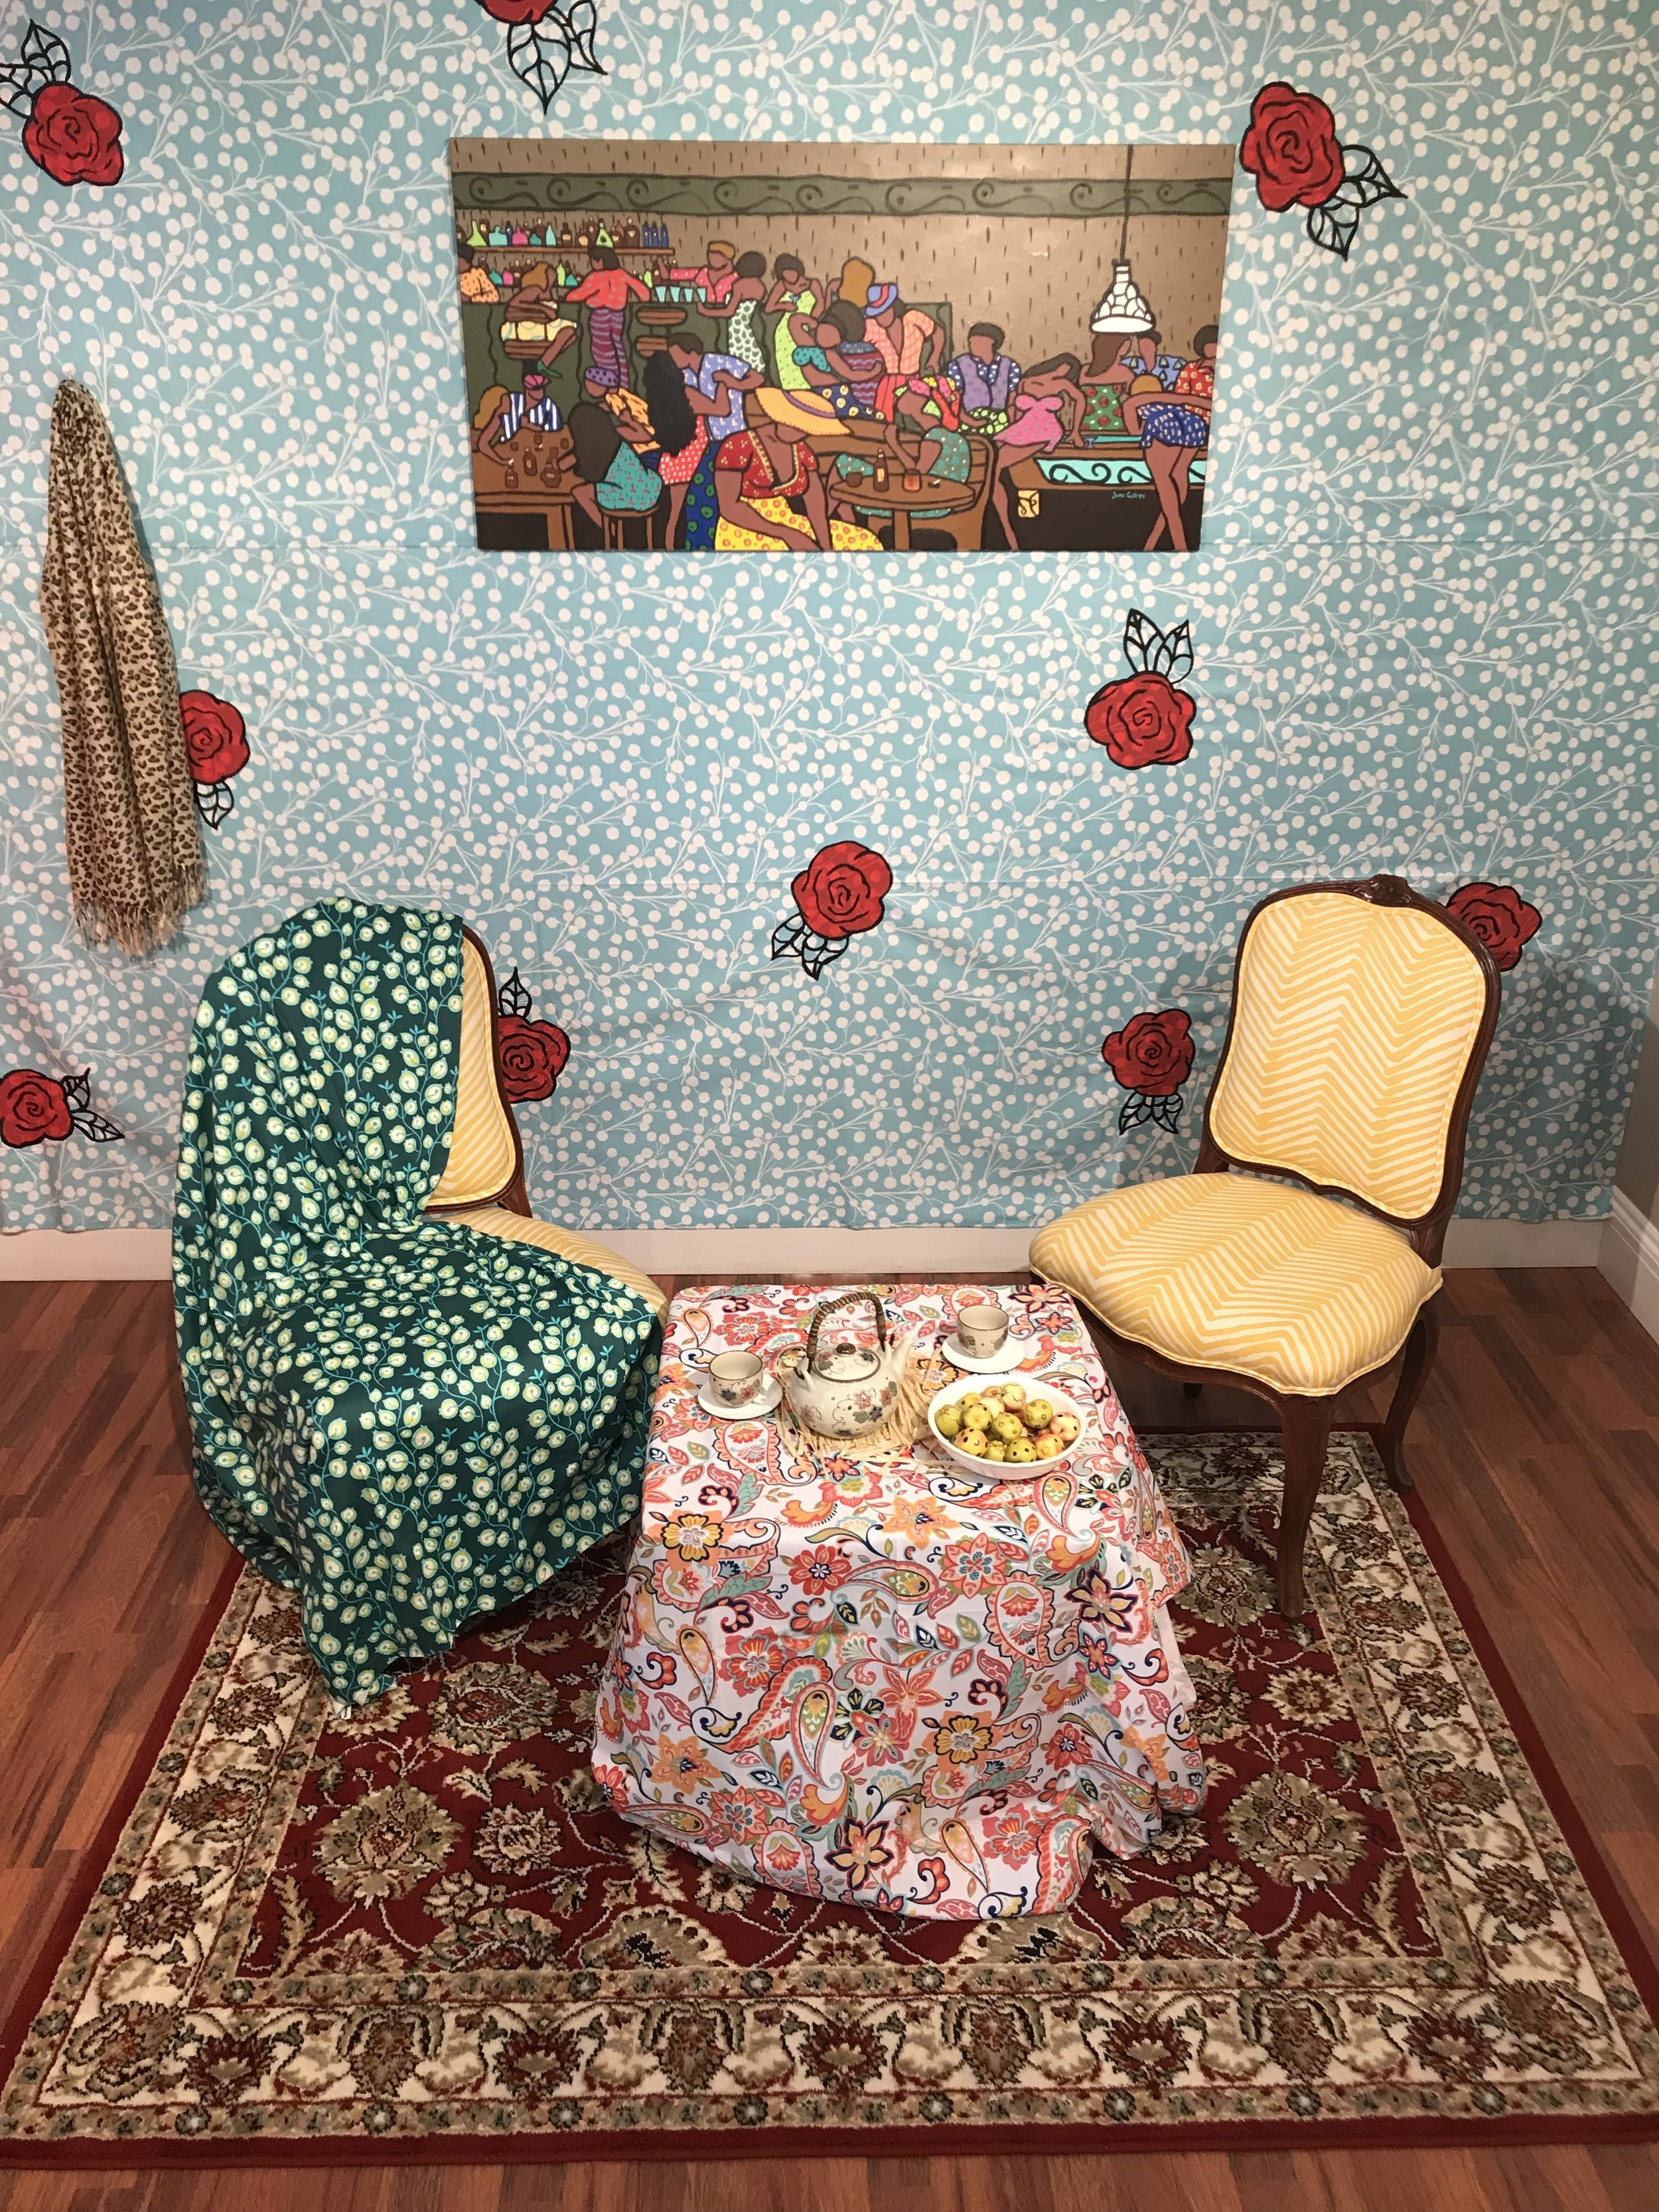 June Collie.  Dollhouse,  Fabrics and Mixed Media. 2018. Created for the D'Aguilar Art Foundation's interactive exhibition,  pARTicipate!.  Image courtesy of Tessa Whitehead. Works courtesy of the artist.